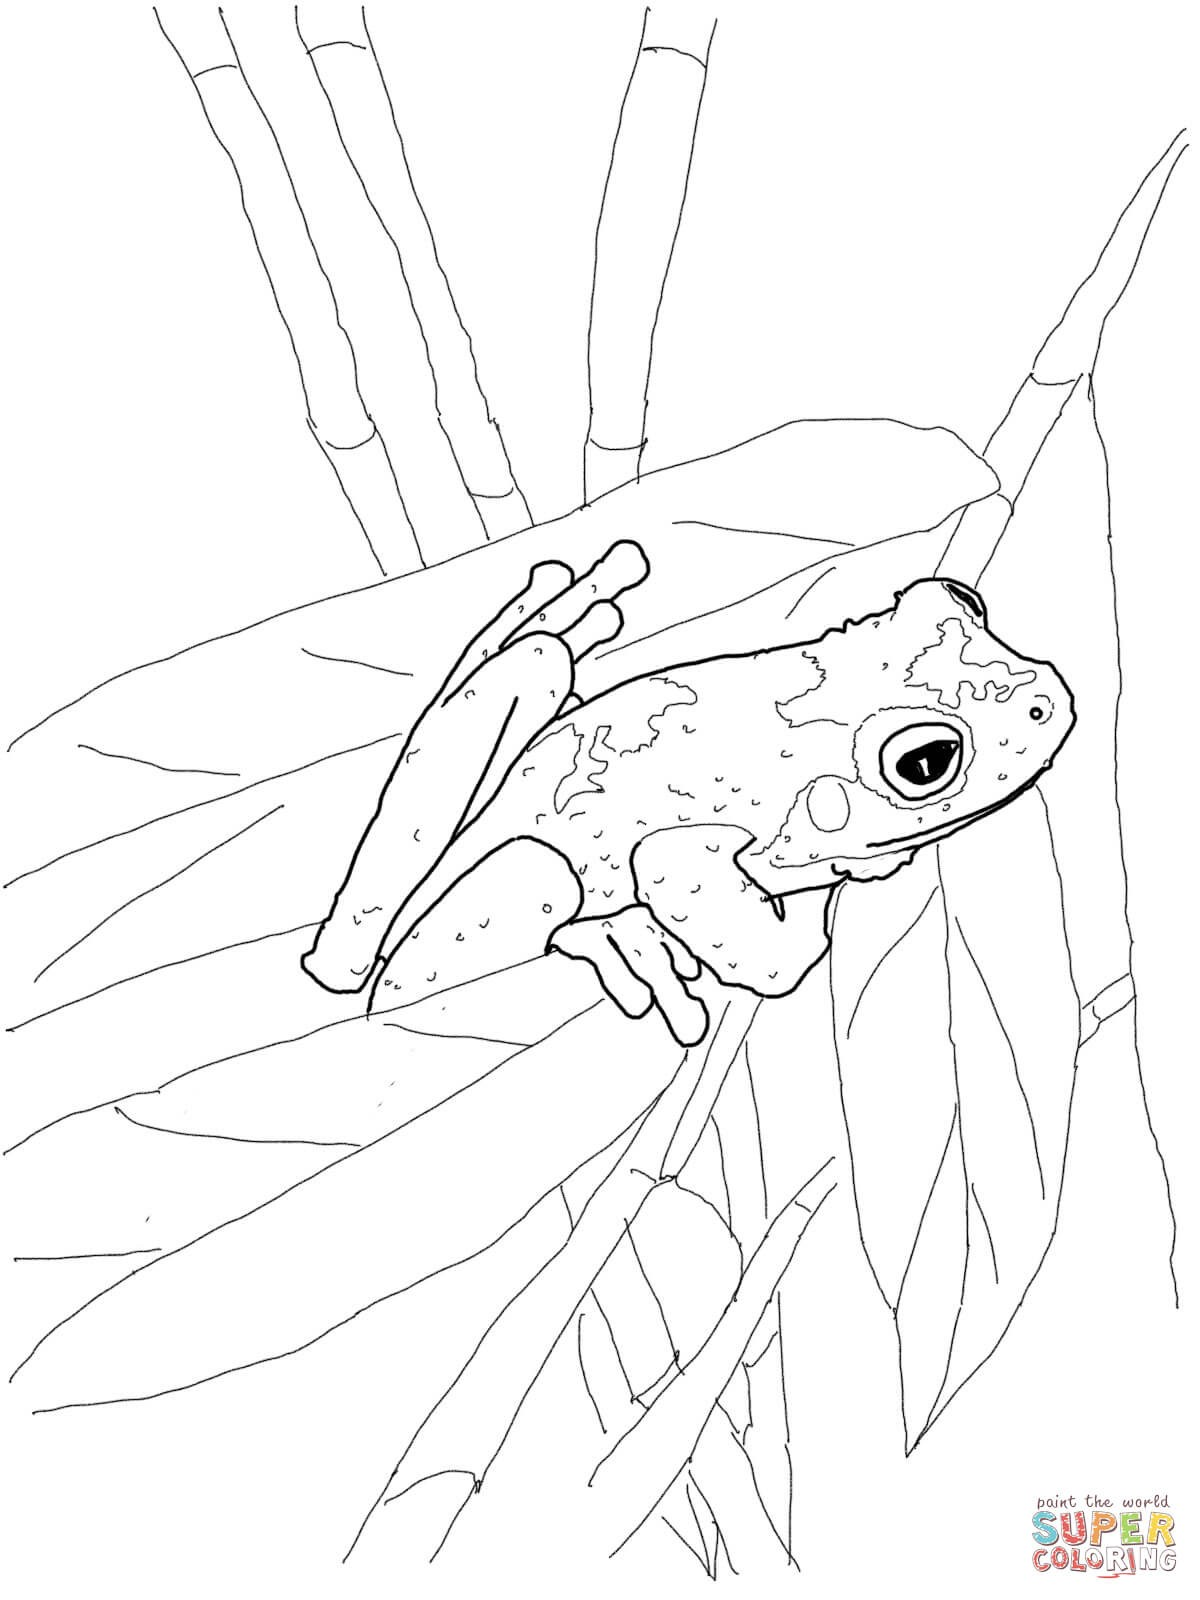 1200x1600 Frog Nature Coloring Page For Kids Freecolorngpagesco